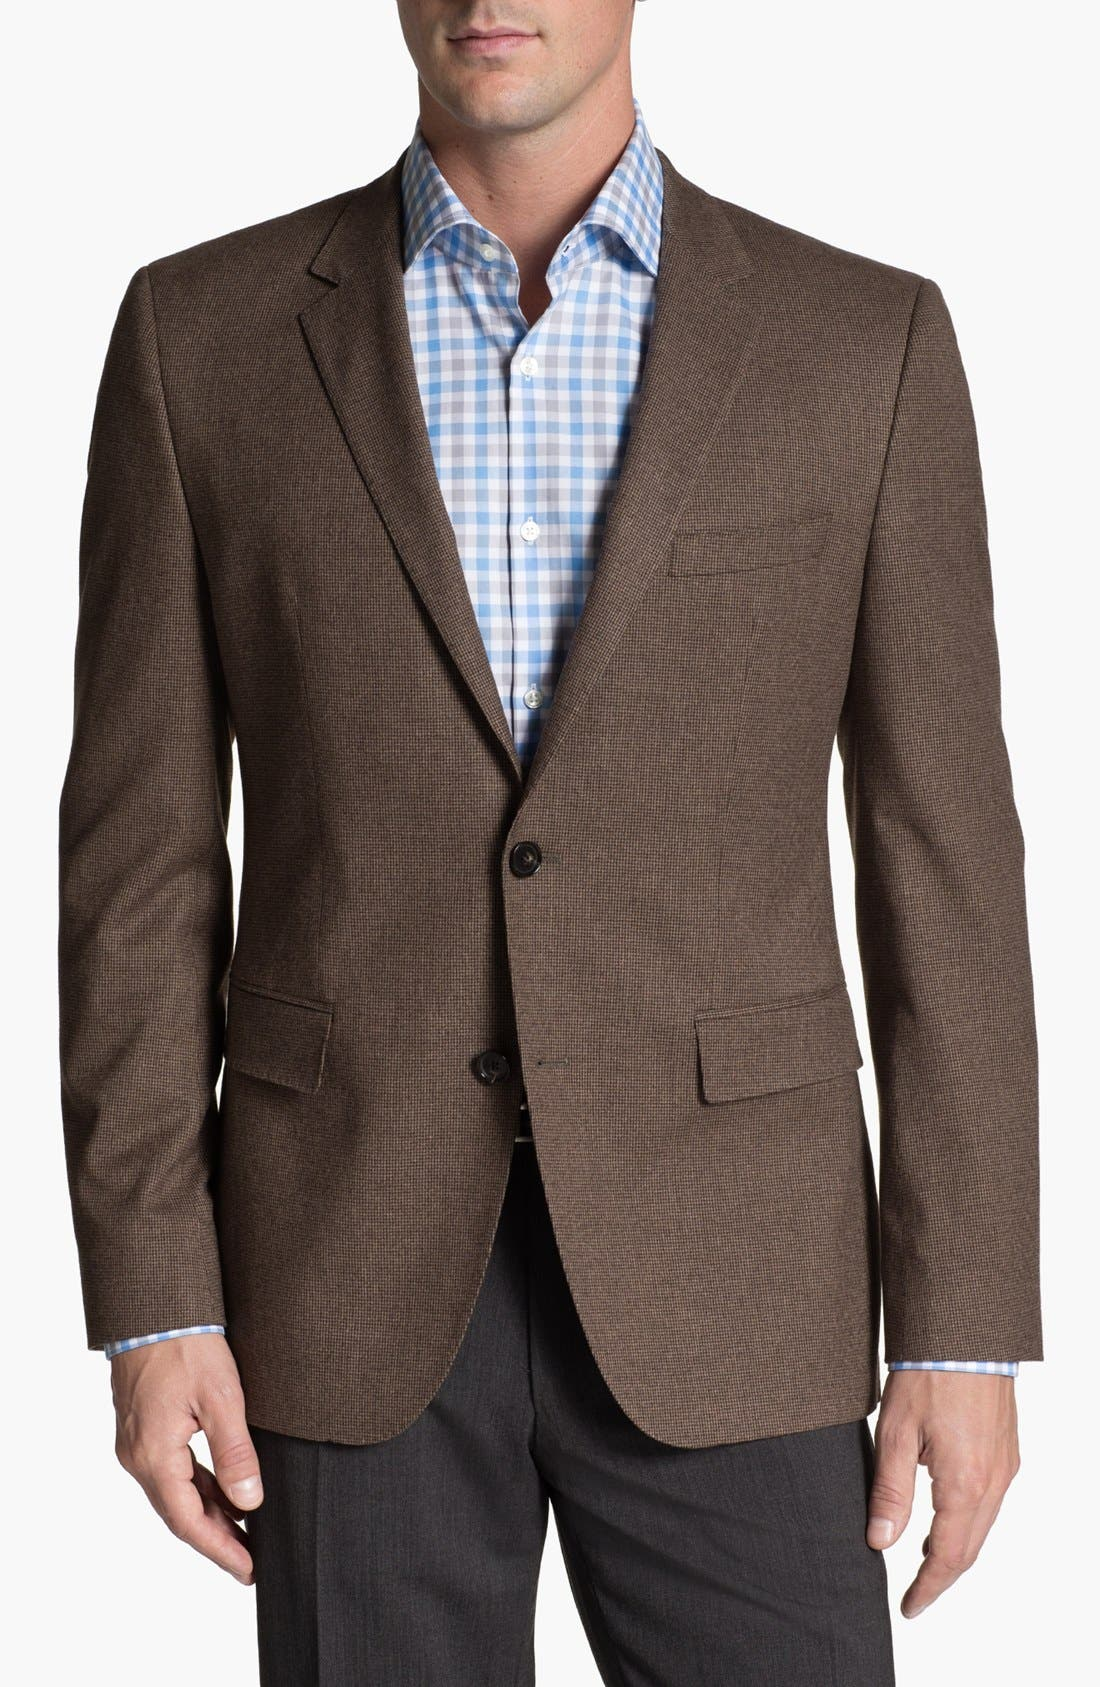 Alternate Image 1 Selected - BOSS Black Sportcoat & Bonobos Twill Chinos